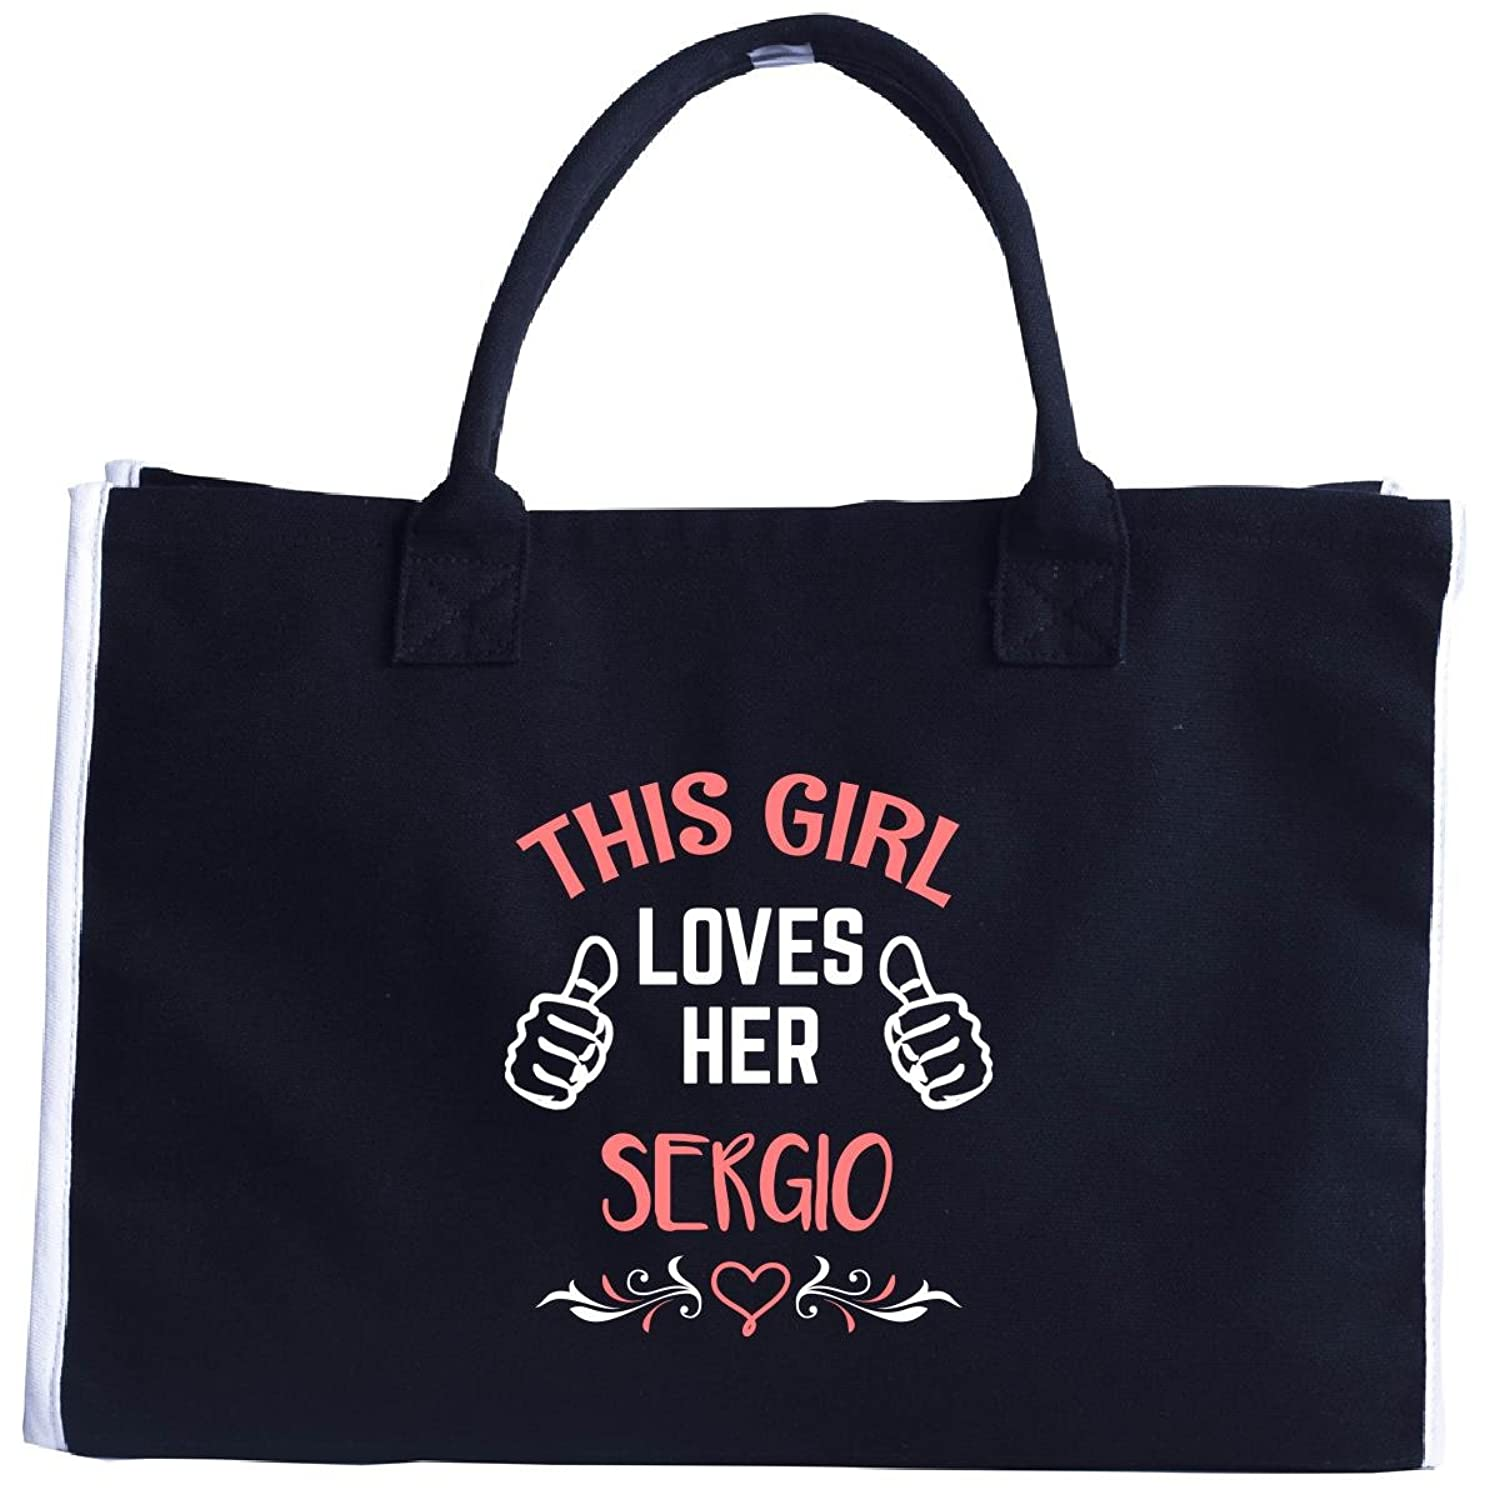 This Girl Loves Her Sergio Valentines Day Gift - Tote Bag